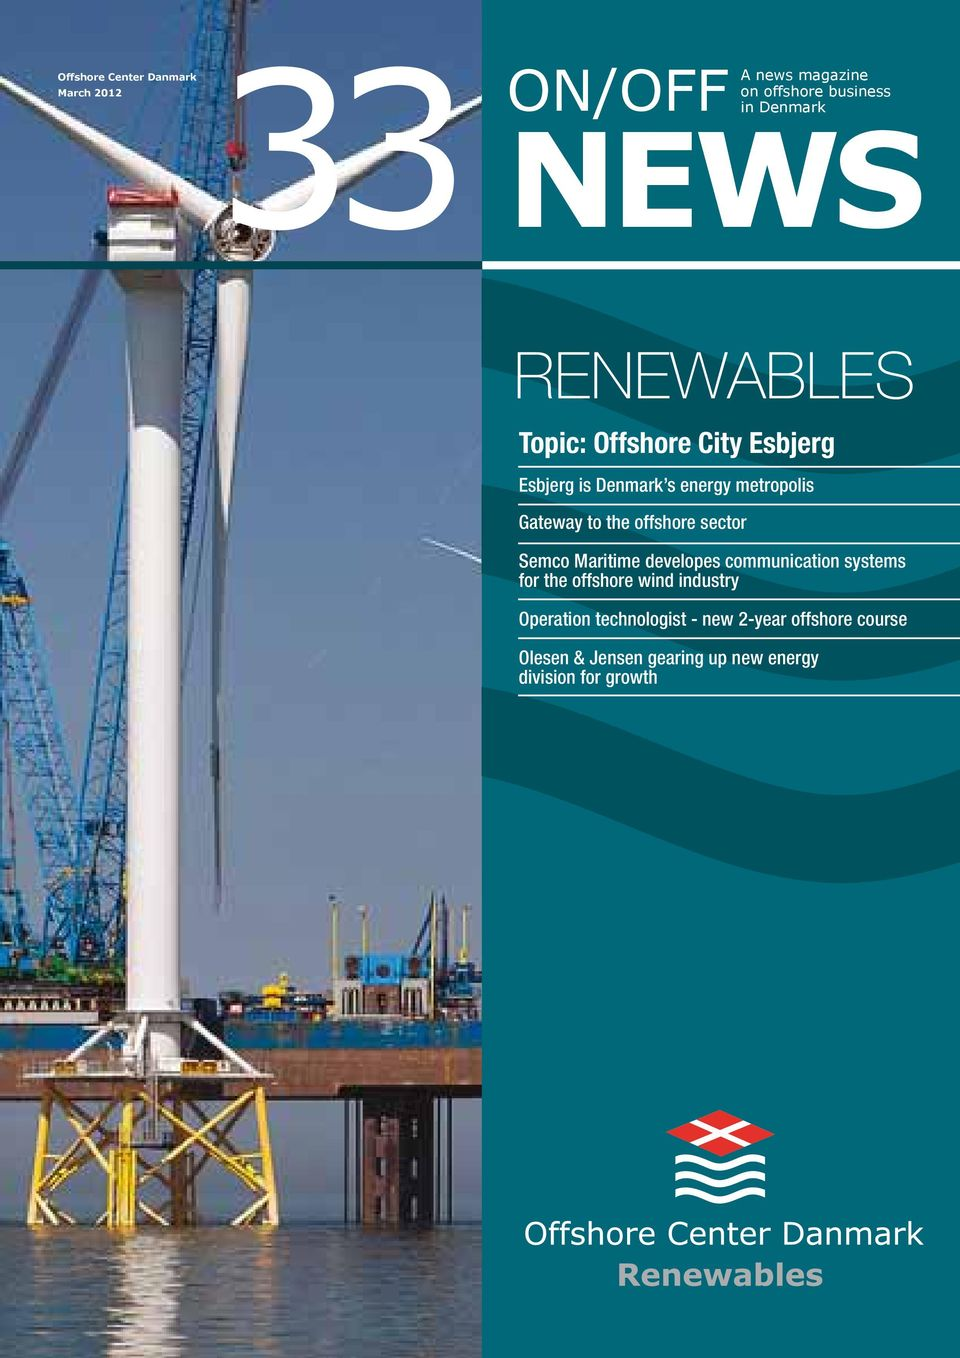 offshore sector Semco Maritime developes communication systems for the offshore wind industry